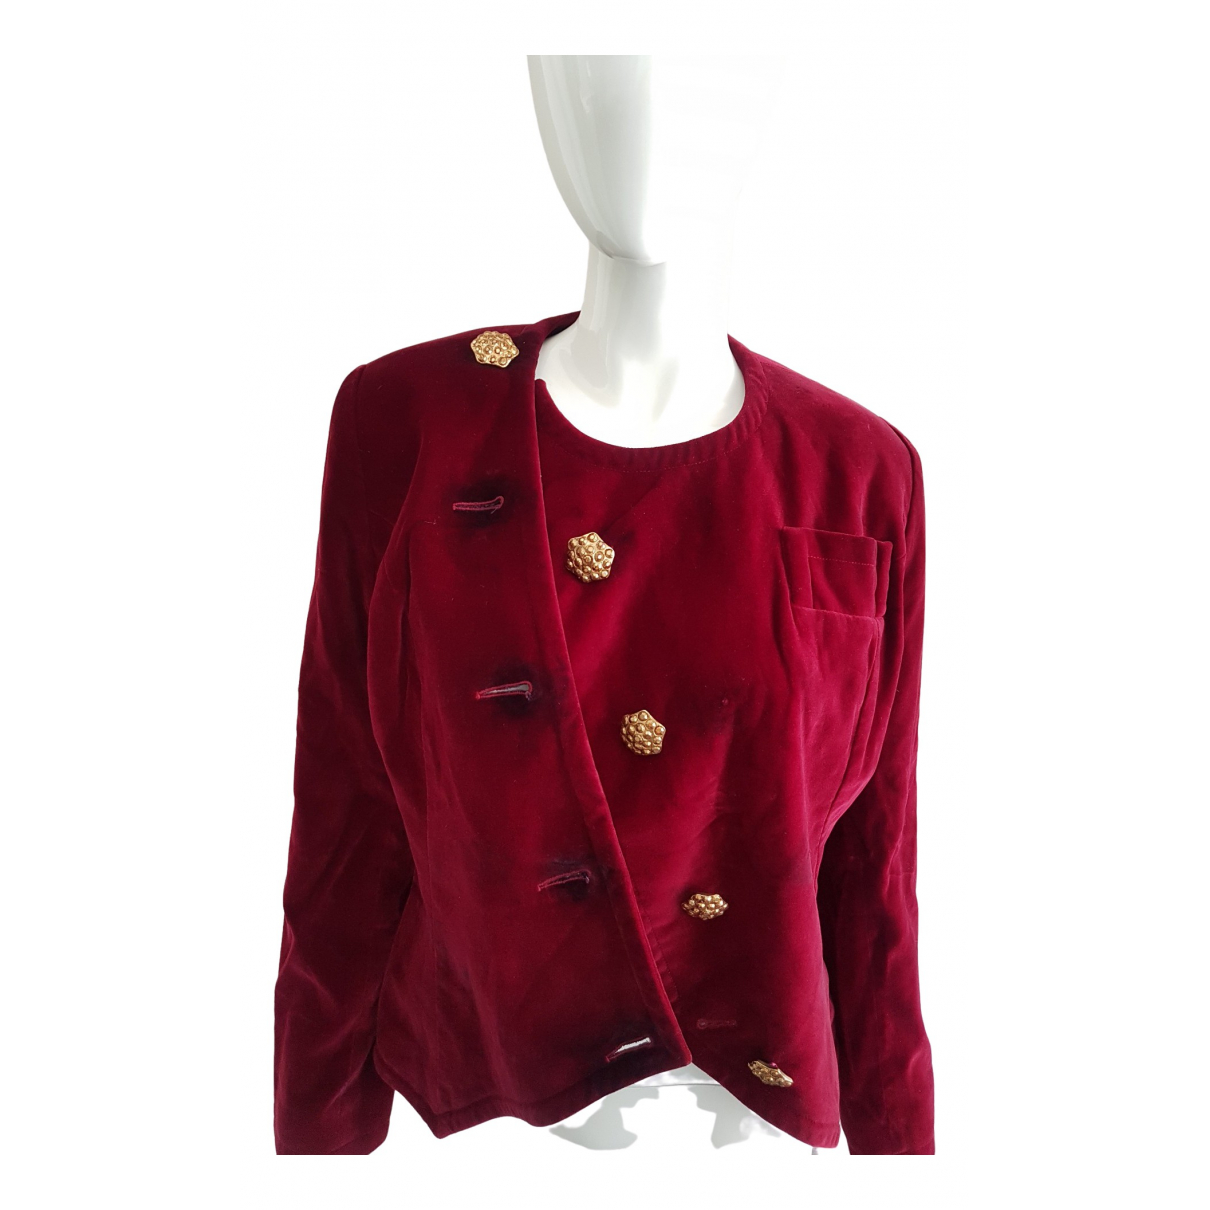 Givenchy \N Burgundy Velvet jacket for Women 38 FR